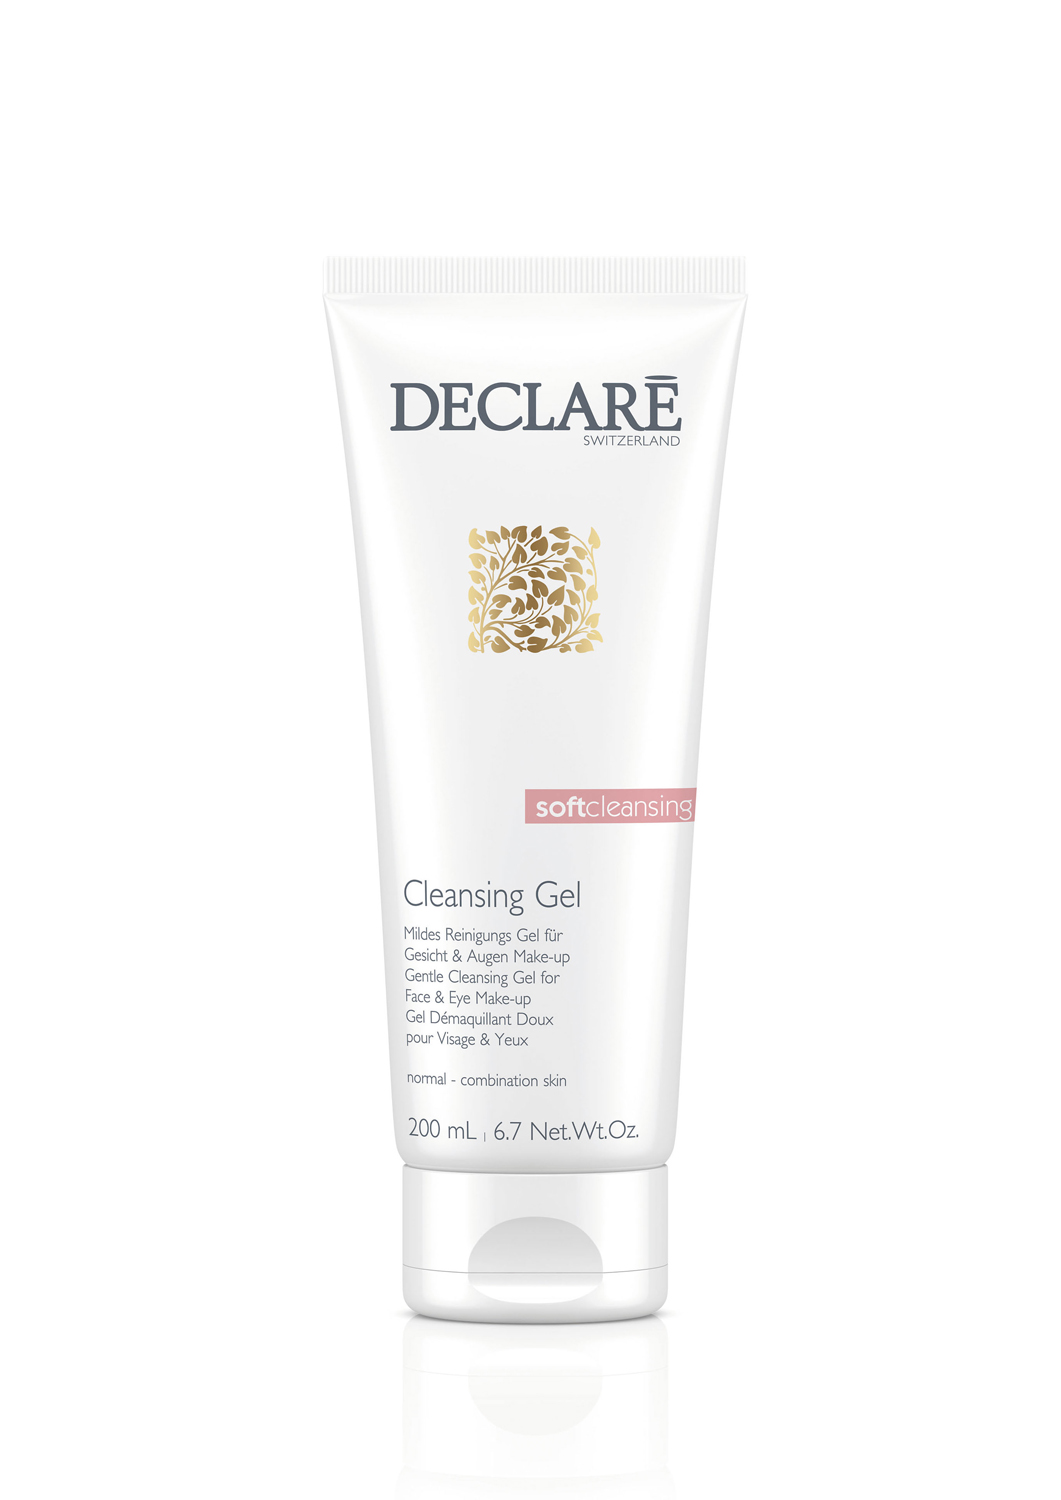 Declaré Soft Cleansing Gentle Cleansing Gel Мягкий очищающий гель (200 ml) 501